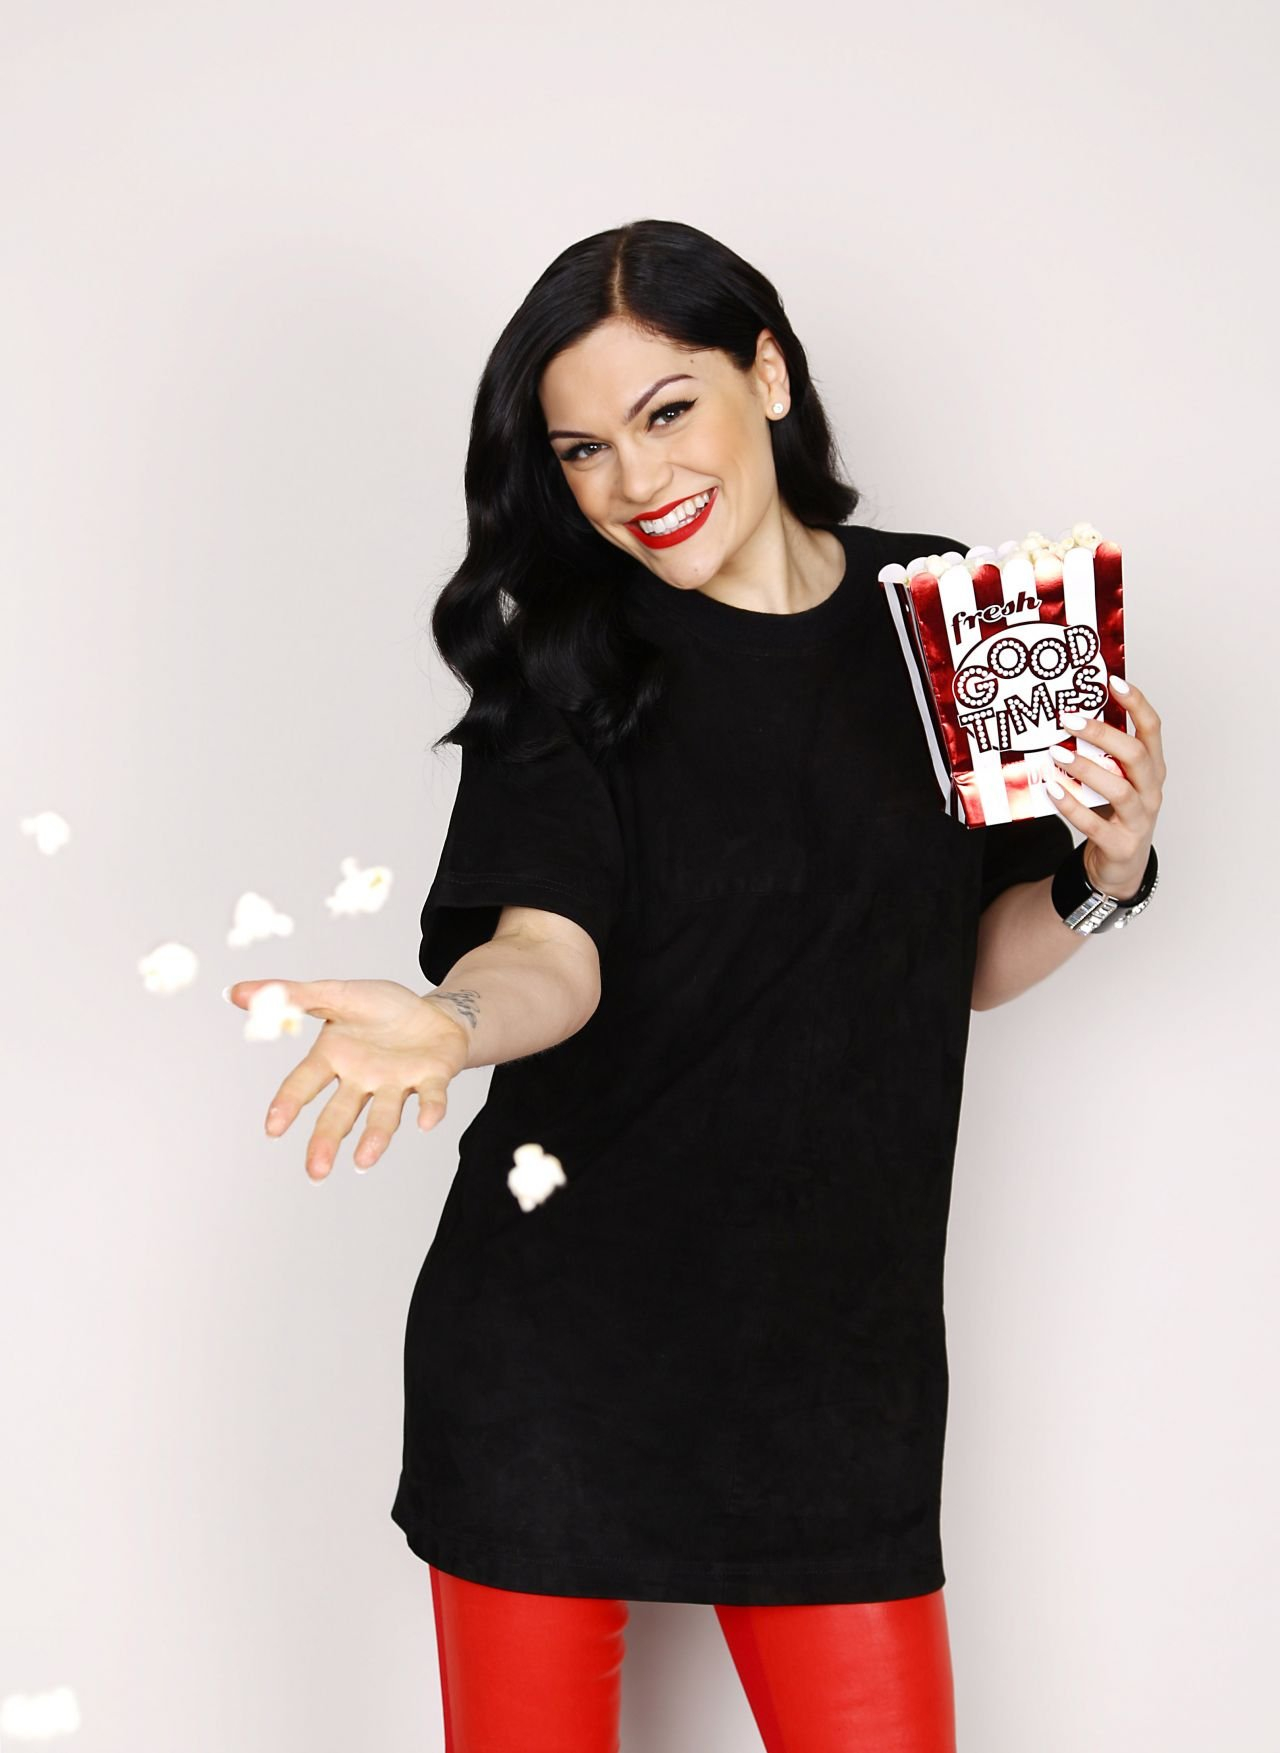 Jessie J - Portraits Photoshoot During Flz's Jingle Ball 2014 In Jessie J Calendar 2019